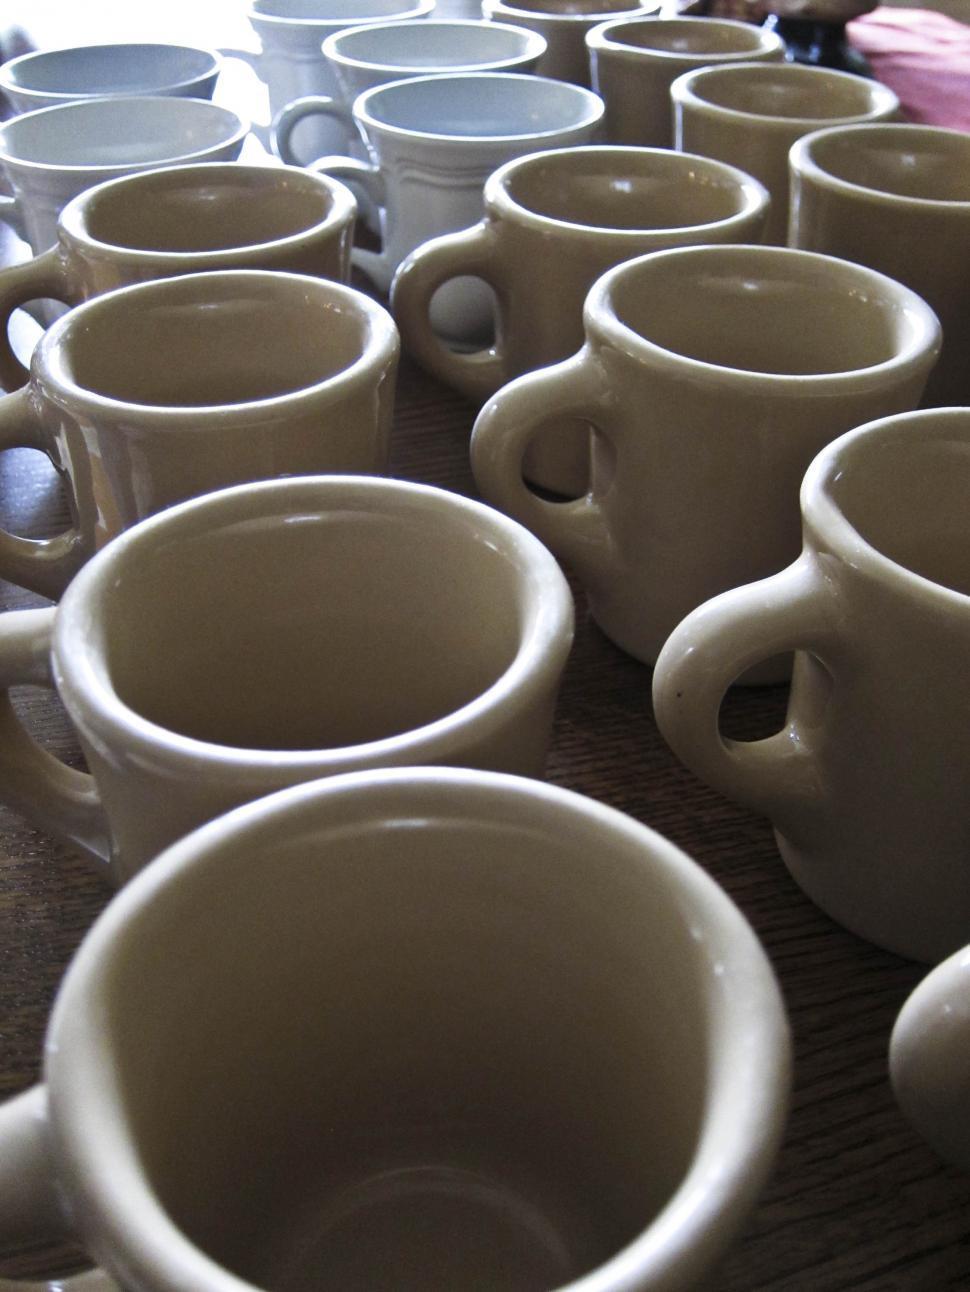 Download Free Stock HD Photo of empty mugs Online